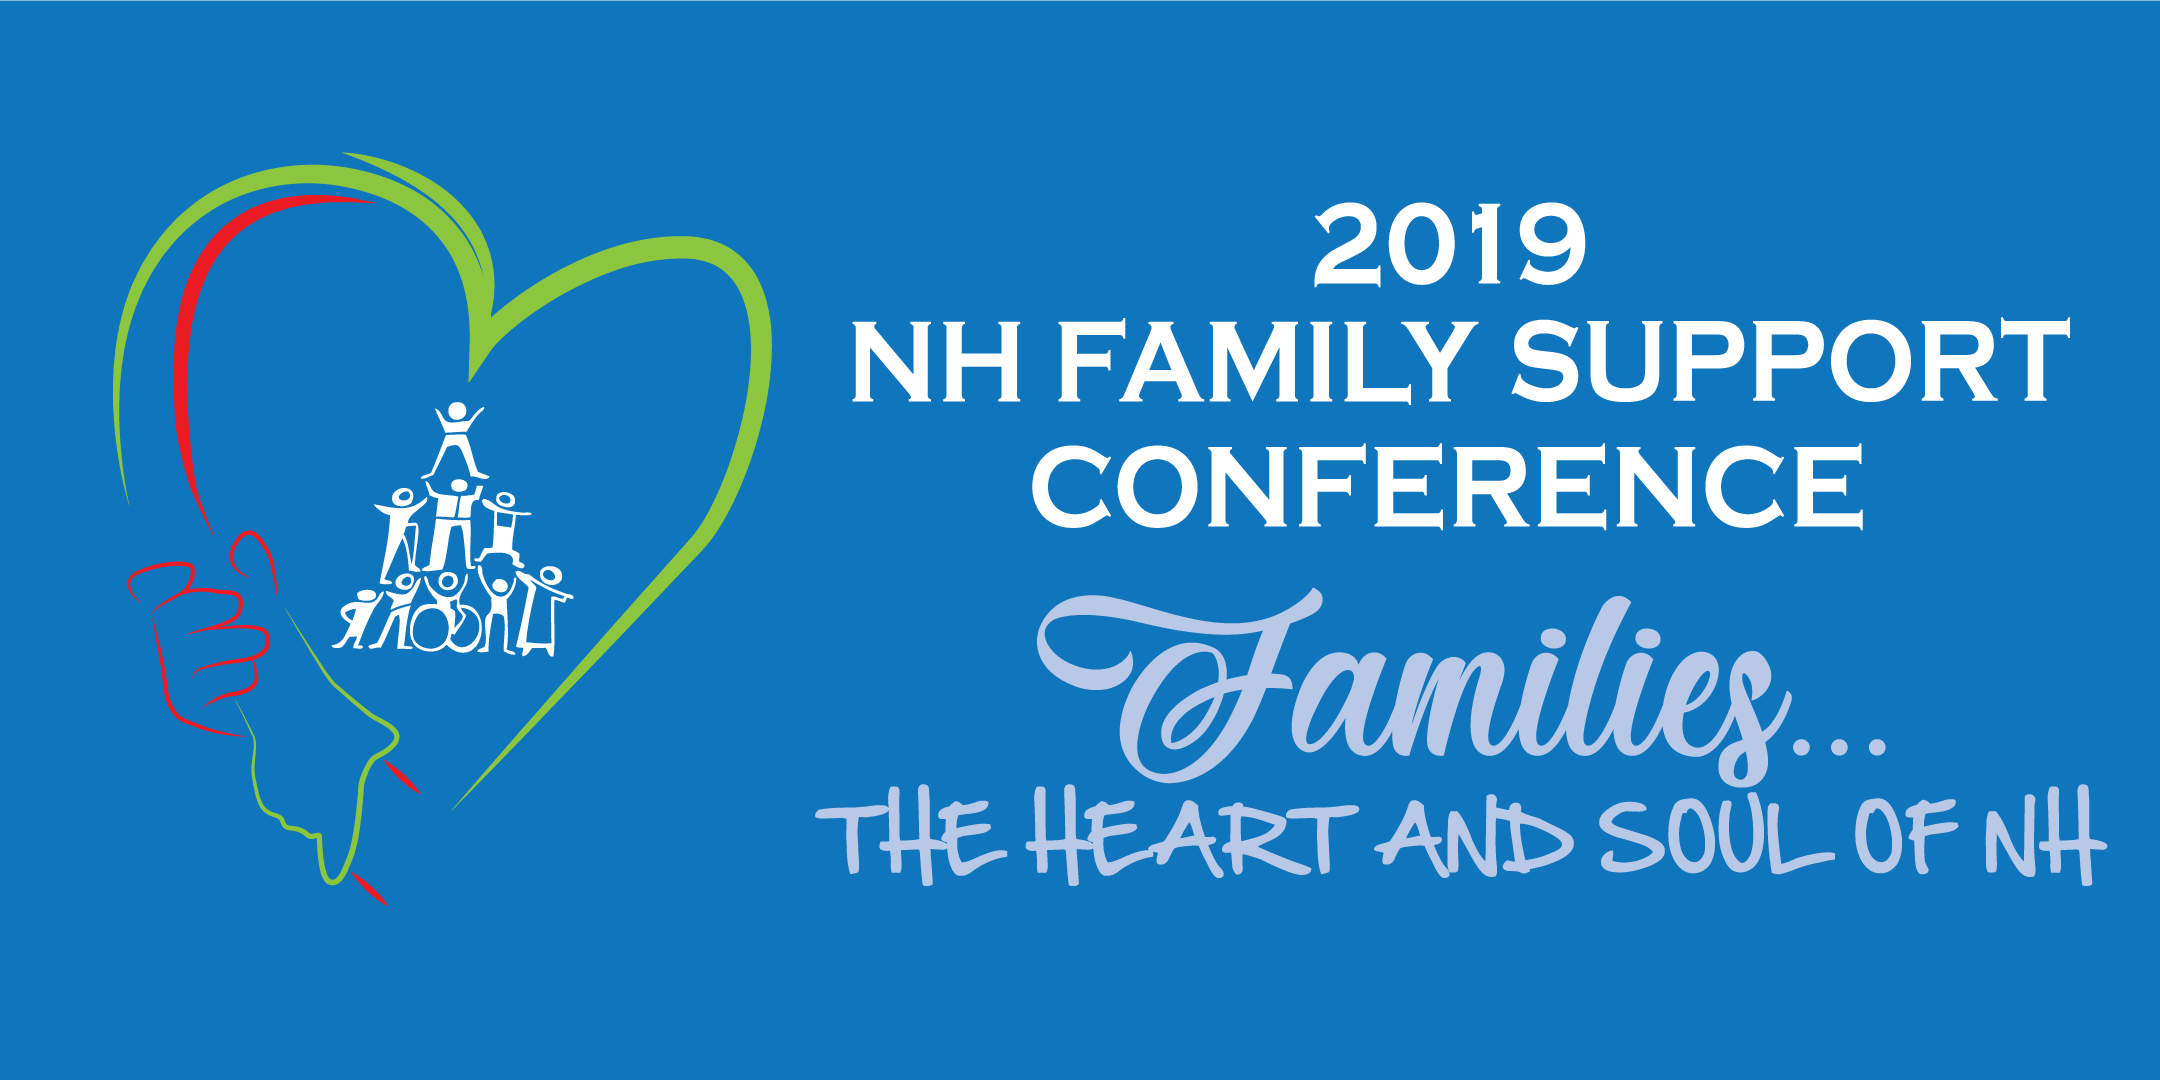 Family Support Conference 2019